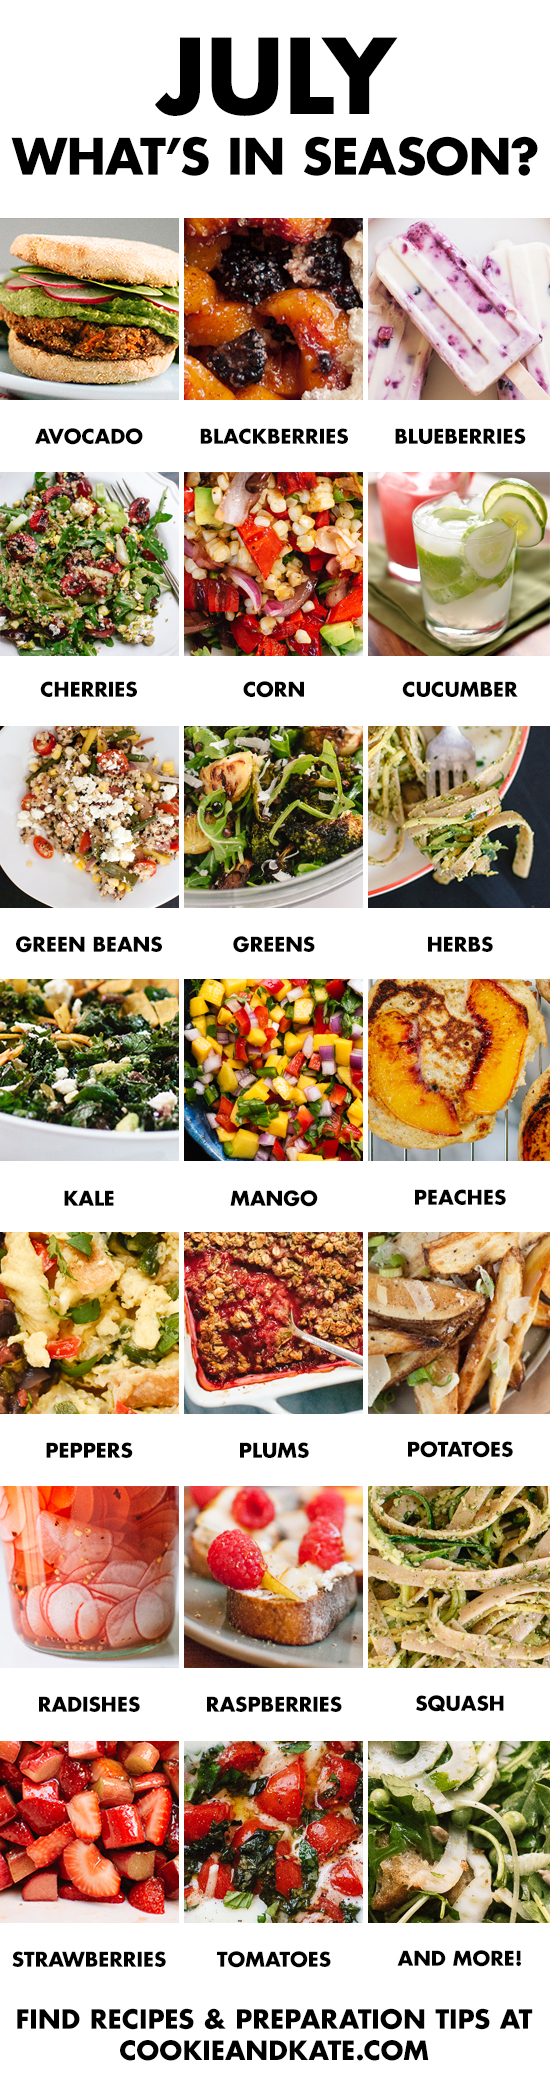 july-seasonal-fruits-and-vegetables-guide